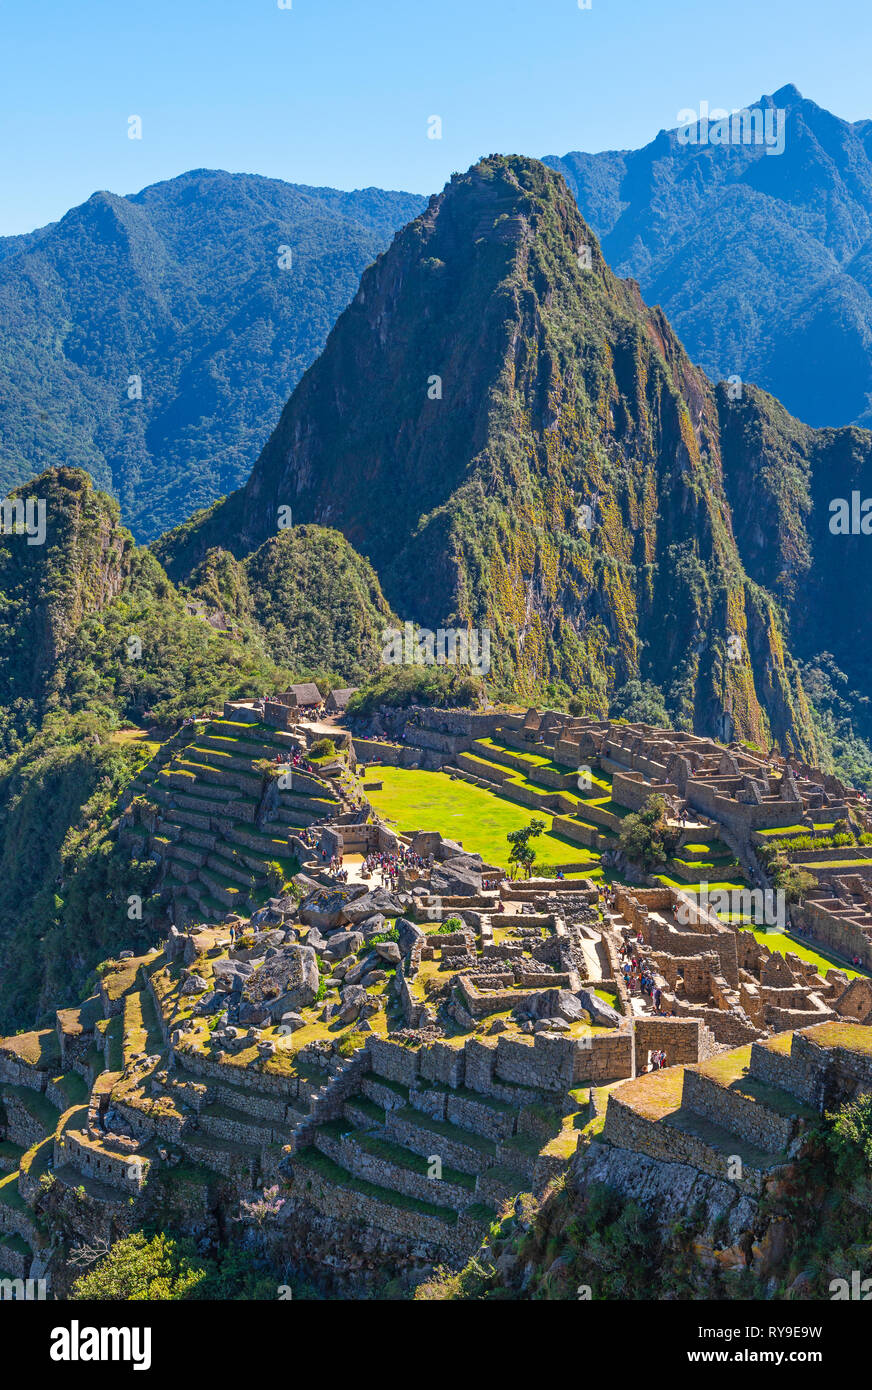 Vertical photograph of the Incan ruin of Machu Picchu with the Huayna Picchu mountain peak in the background, Cusco Province, Peru. - Stock Image